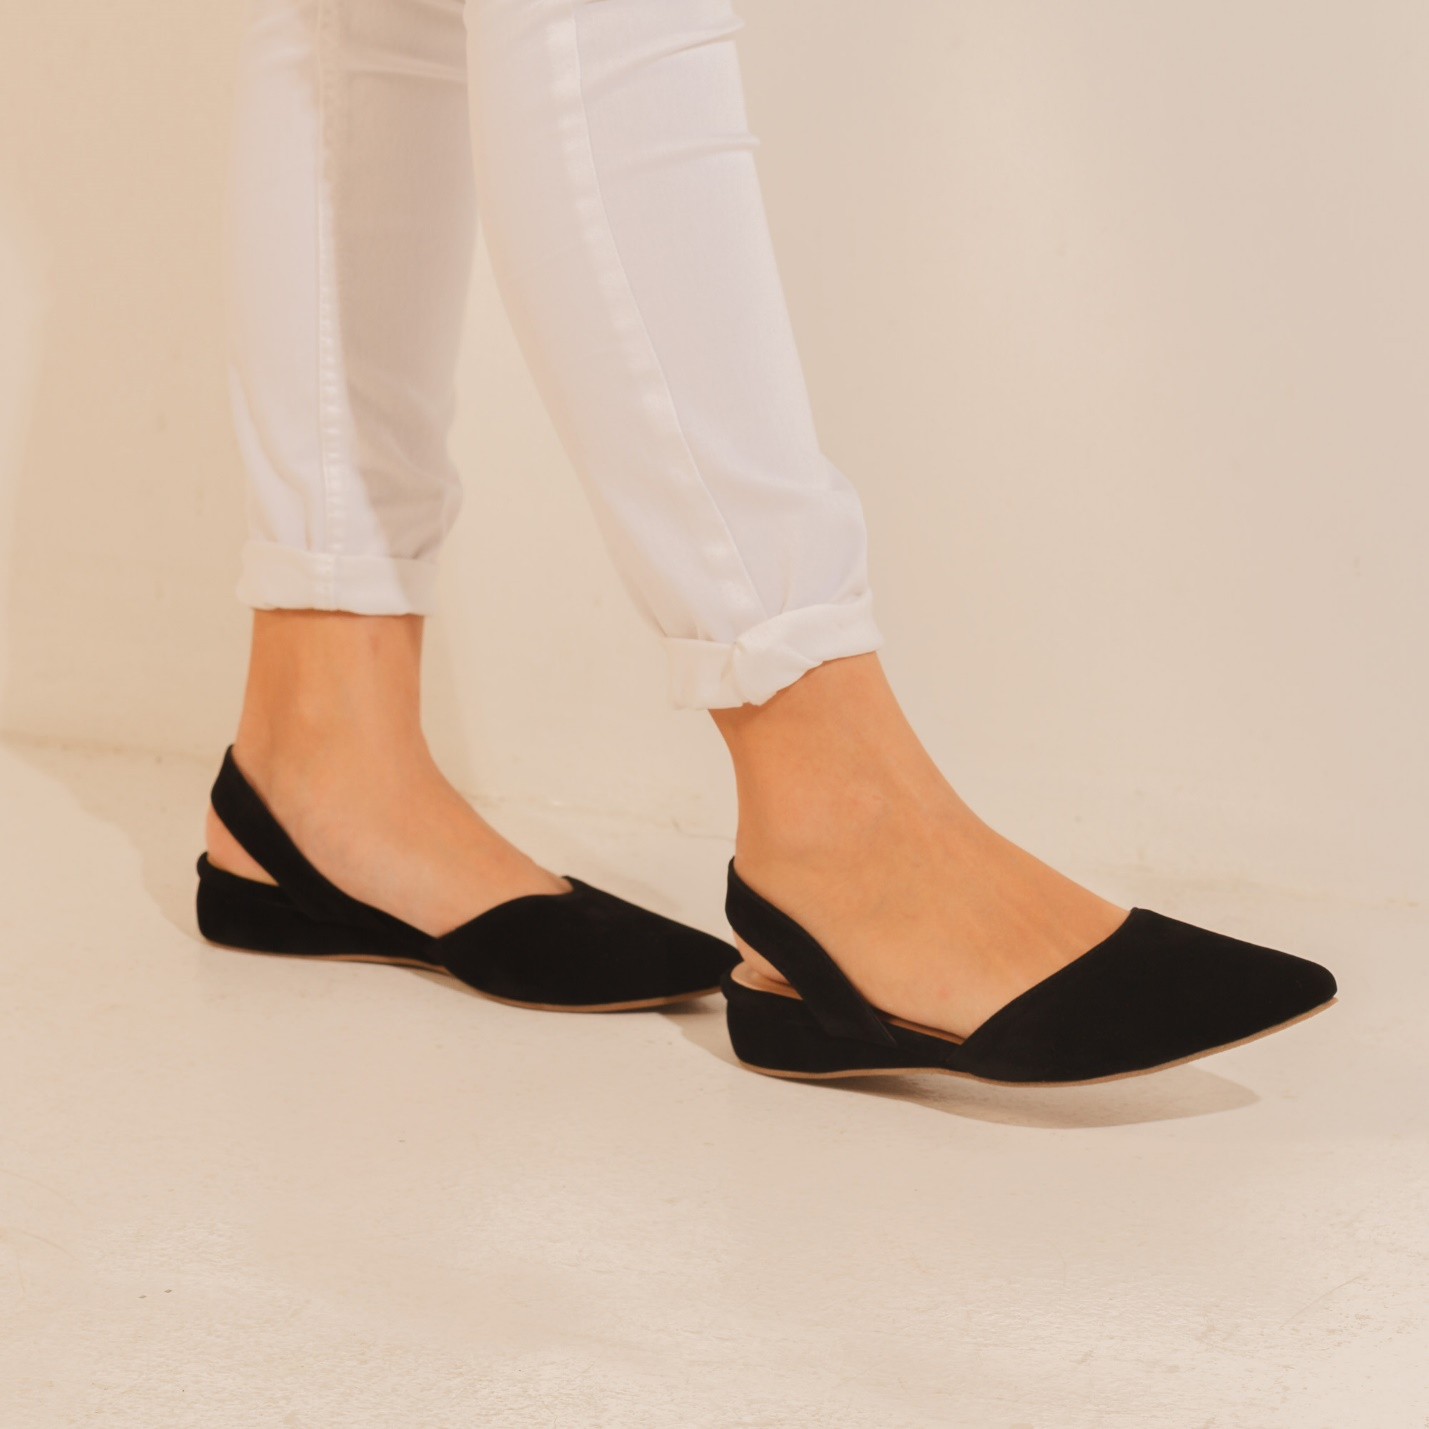 Shoes For Sale Philippines Advantages Of Flats Over Heels Copy